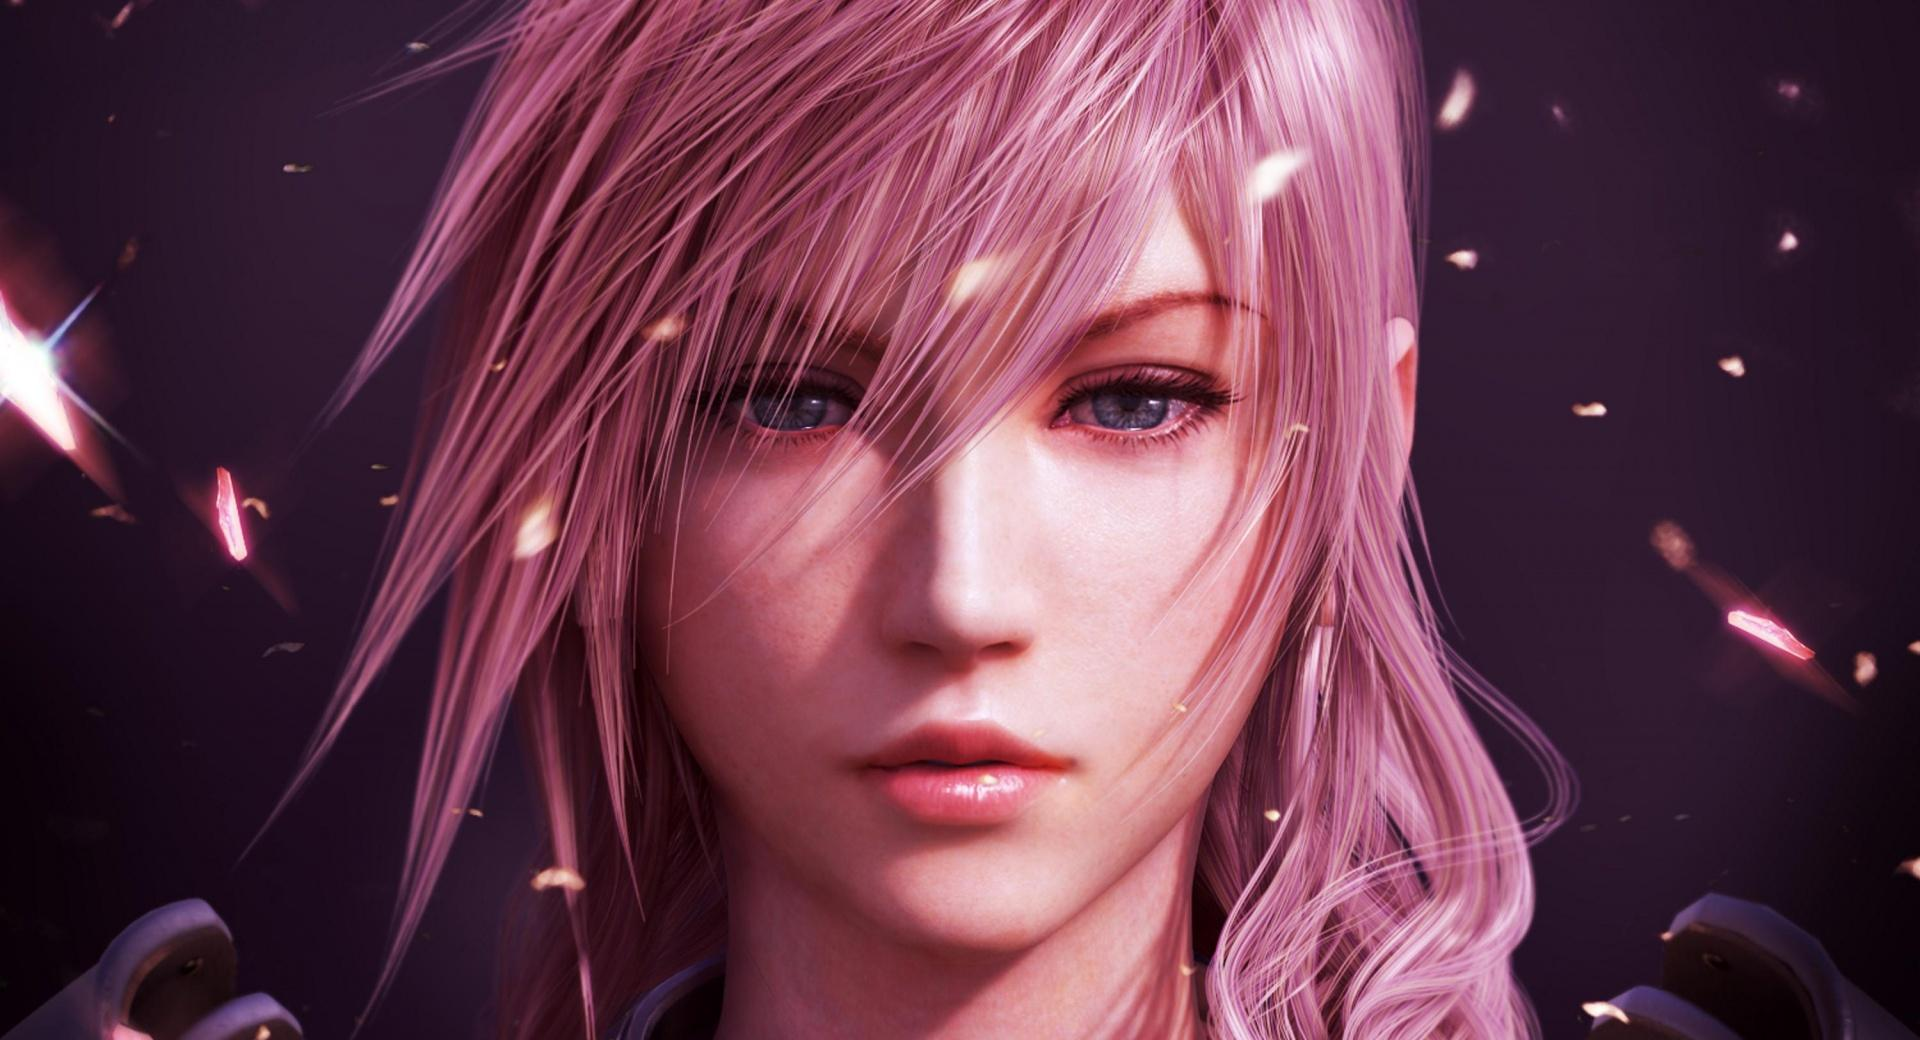 Final Fantasy XIII Lightning wallpapers HD quality